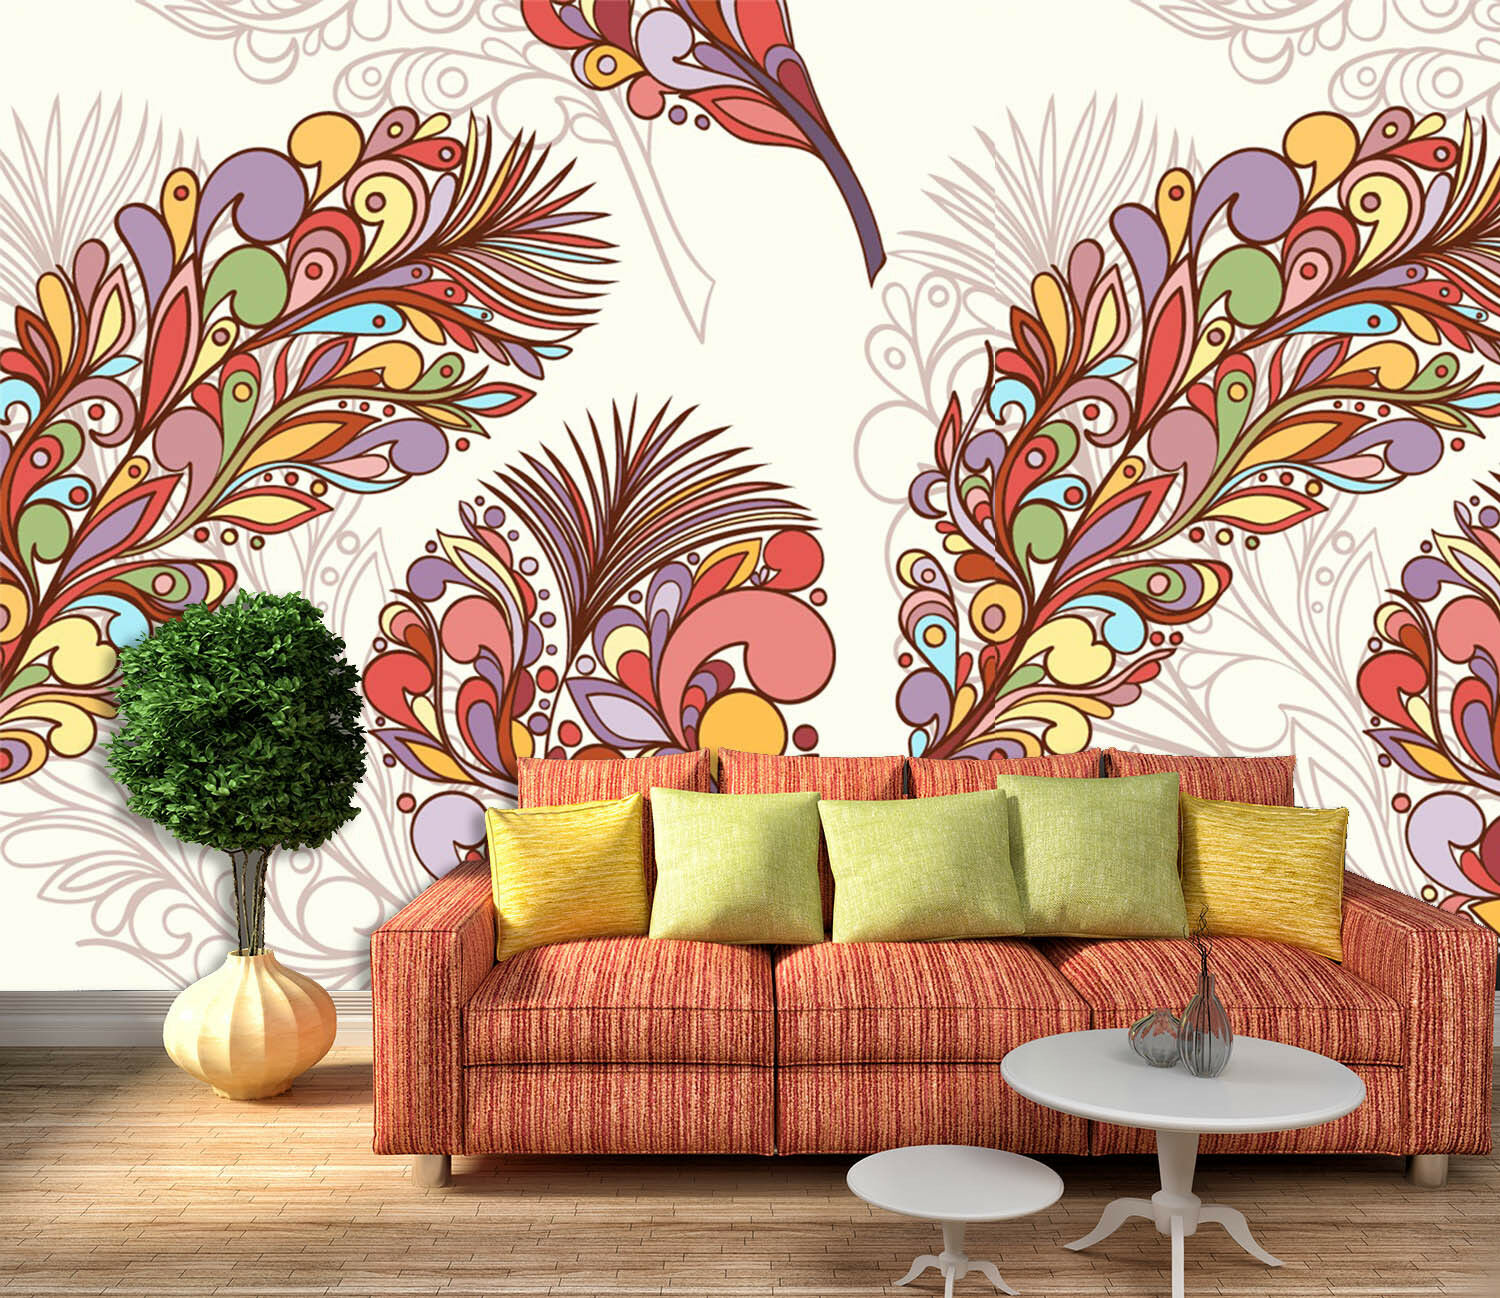 3D Farbe Feather 83 Wall Paper Decal Dercor Home Kids Nursery Mural  Home